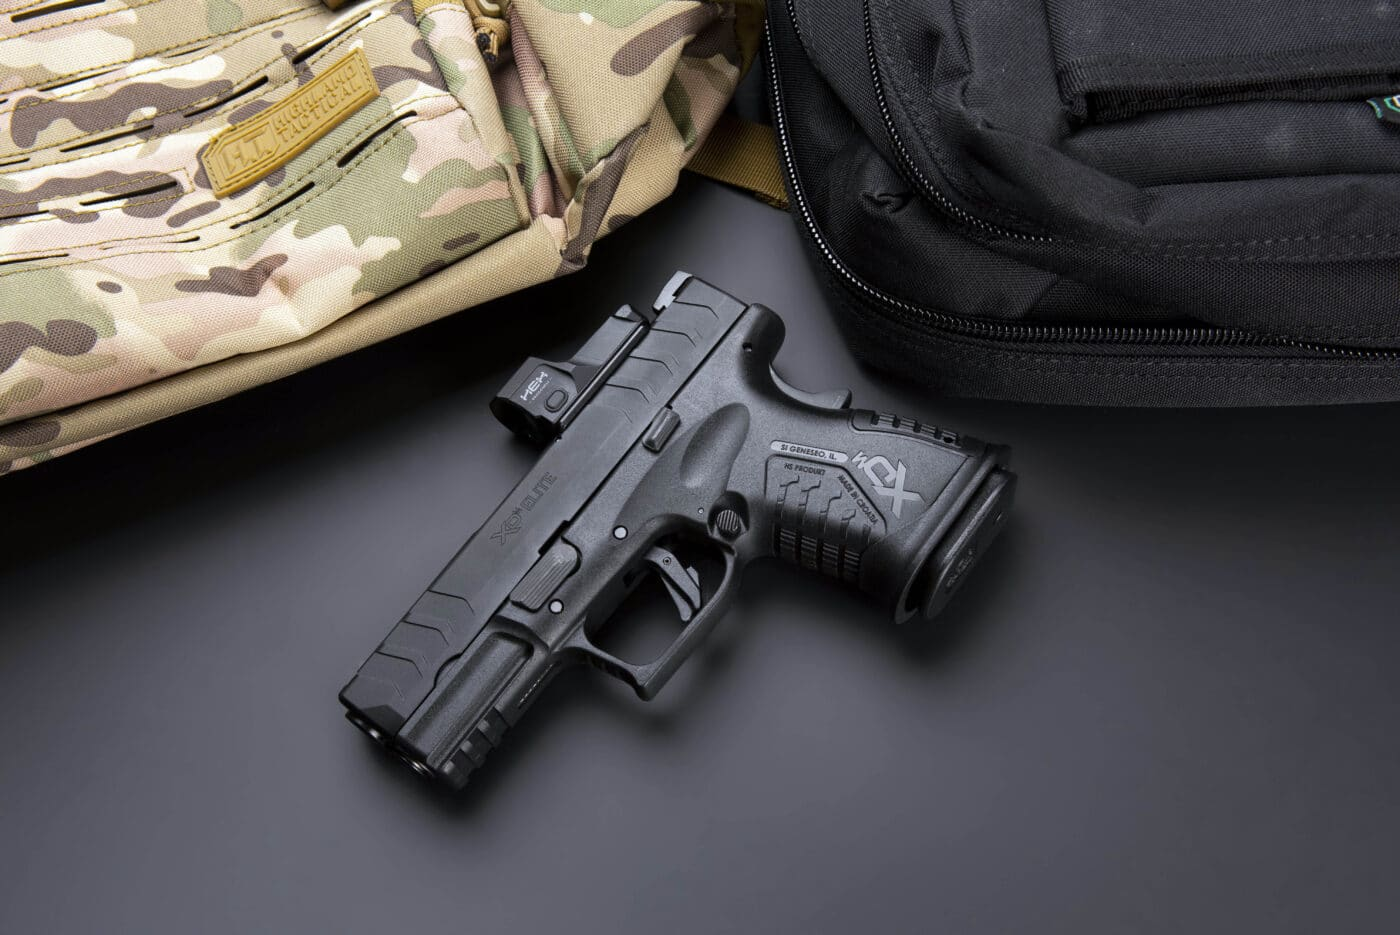 Springfield XD-M Elite 3.8 Compact OSP 10mm with HEX Dragonfly